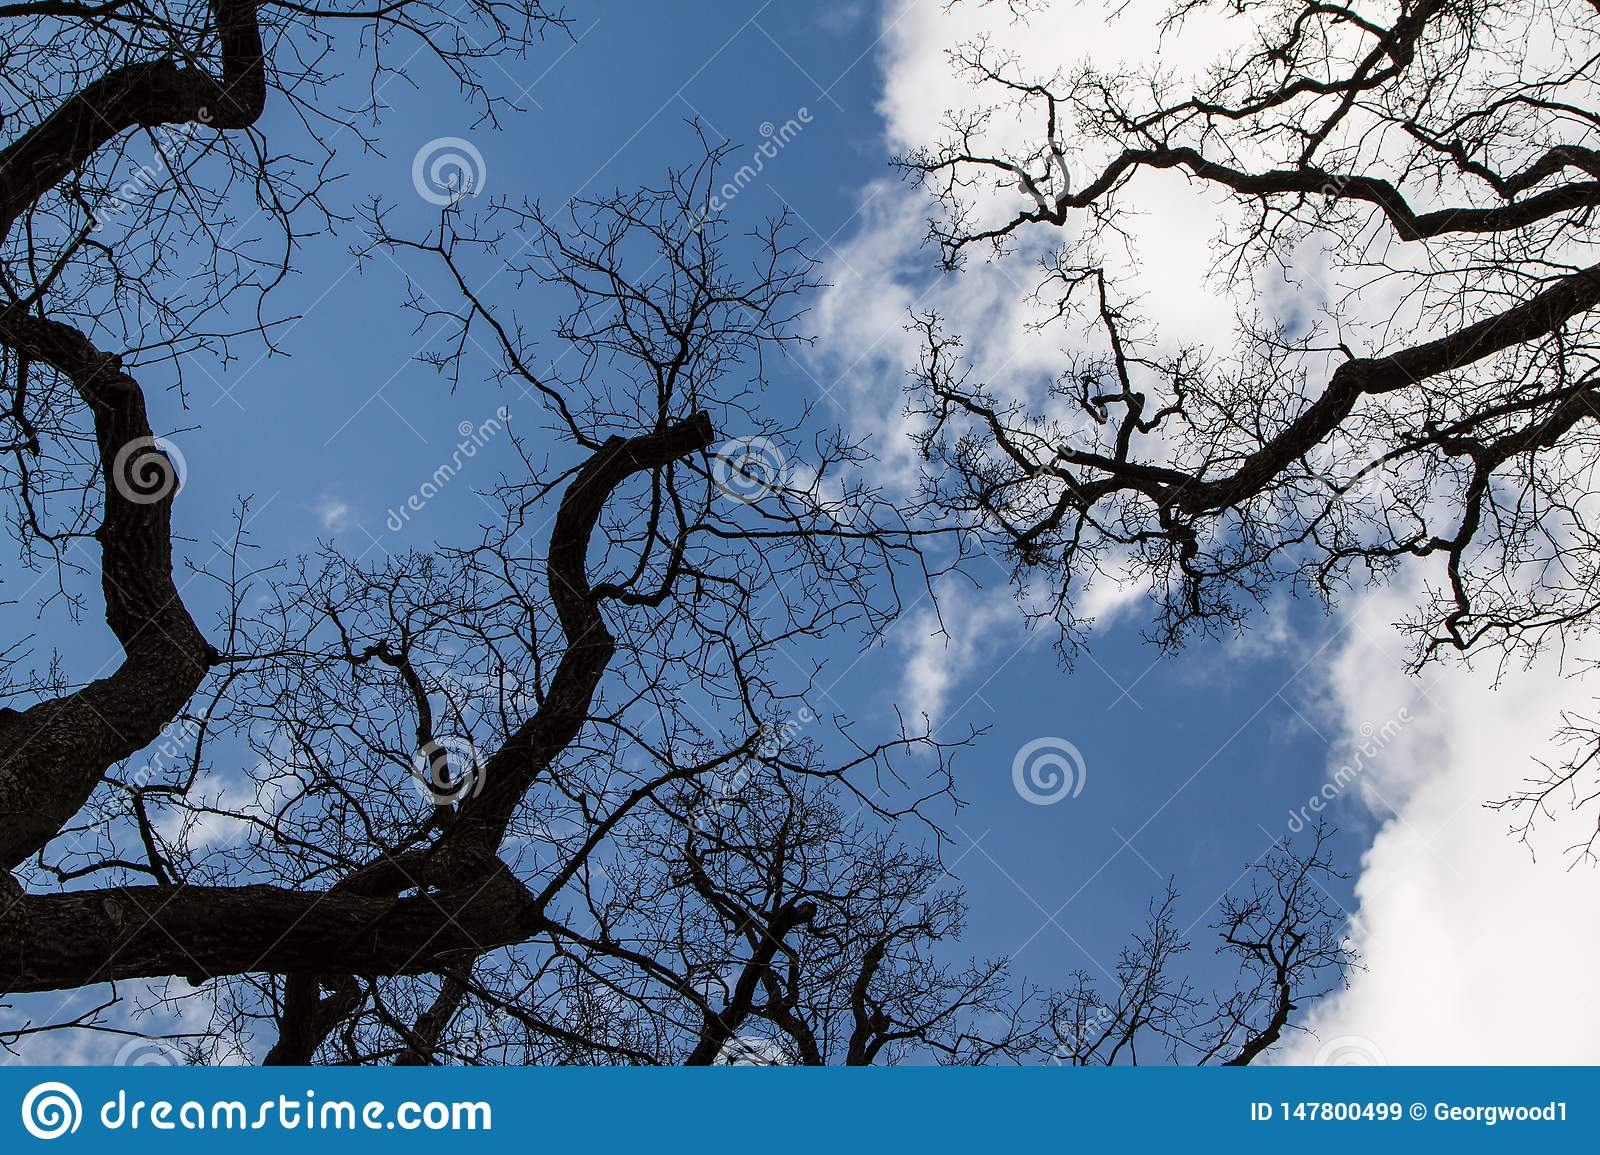 `This oak is only 300 years old. Spring, I will live on